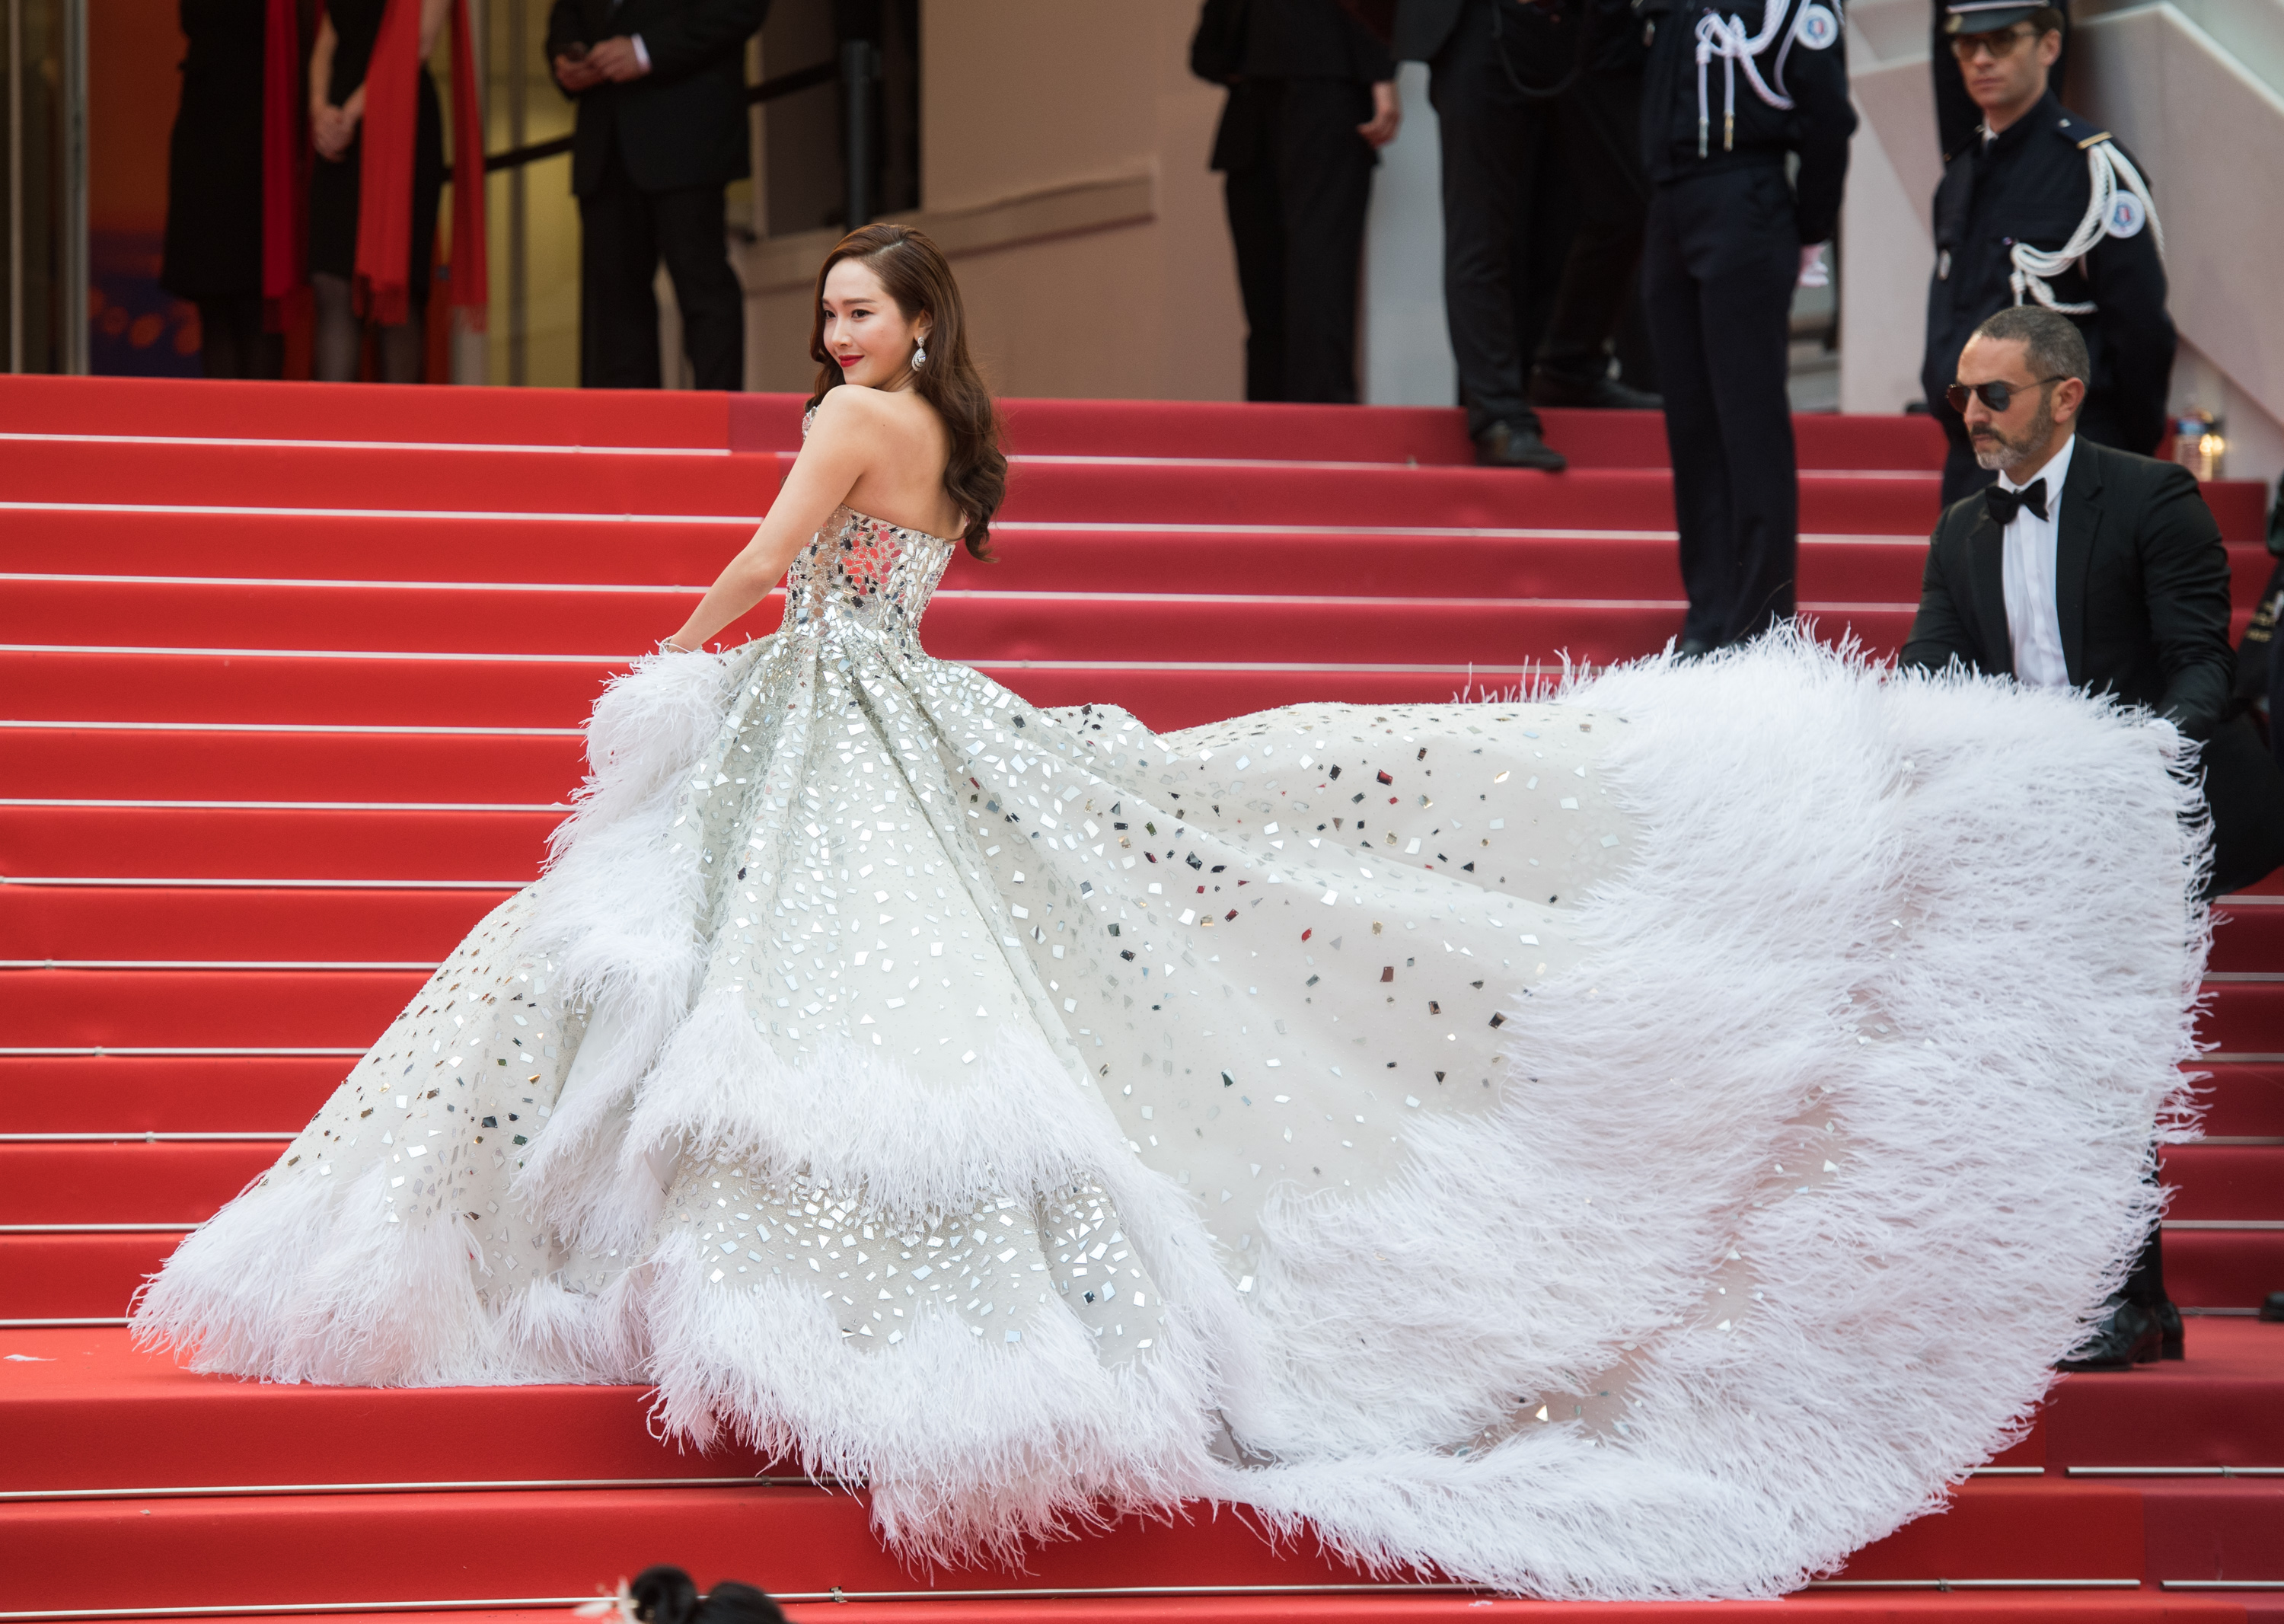 Cannes Film Festival 2019: The best celebrity red carpet fashion - CNN Style